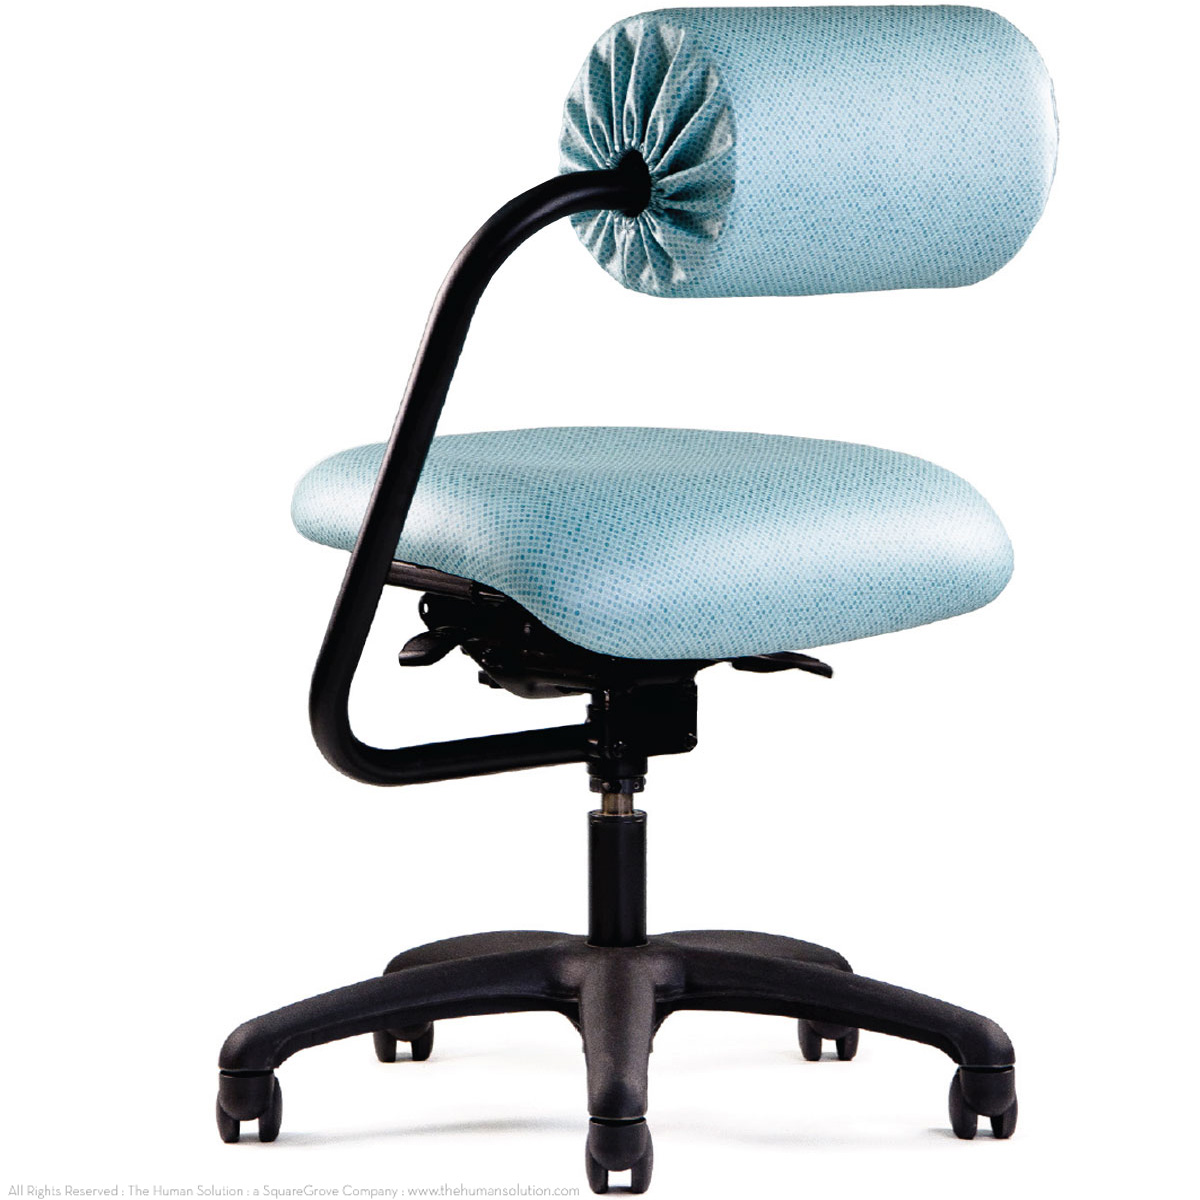 Good Posture Office Chair Neutral Posture Abchair Shop Neutral Posture Chairs